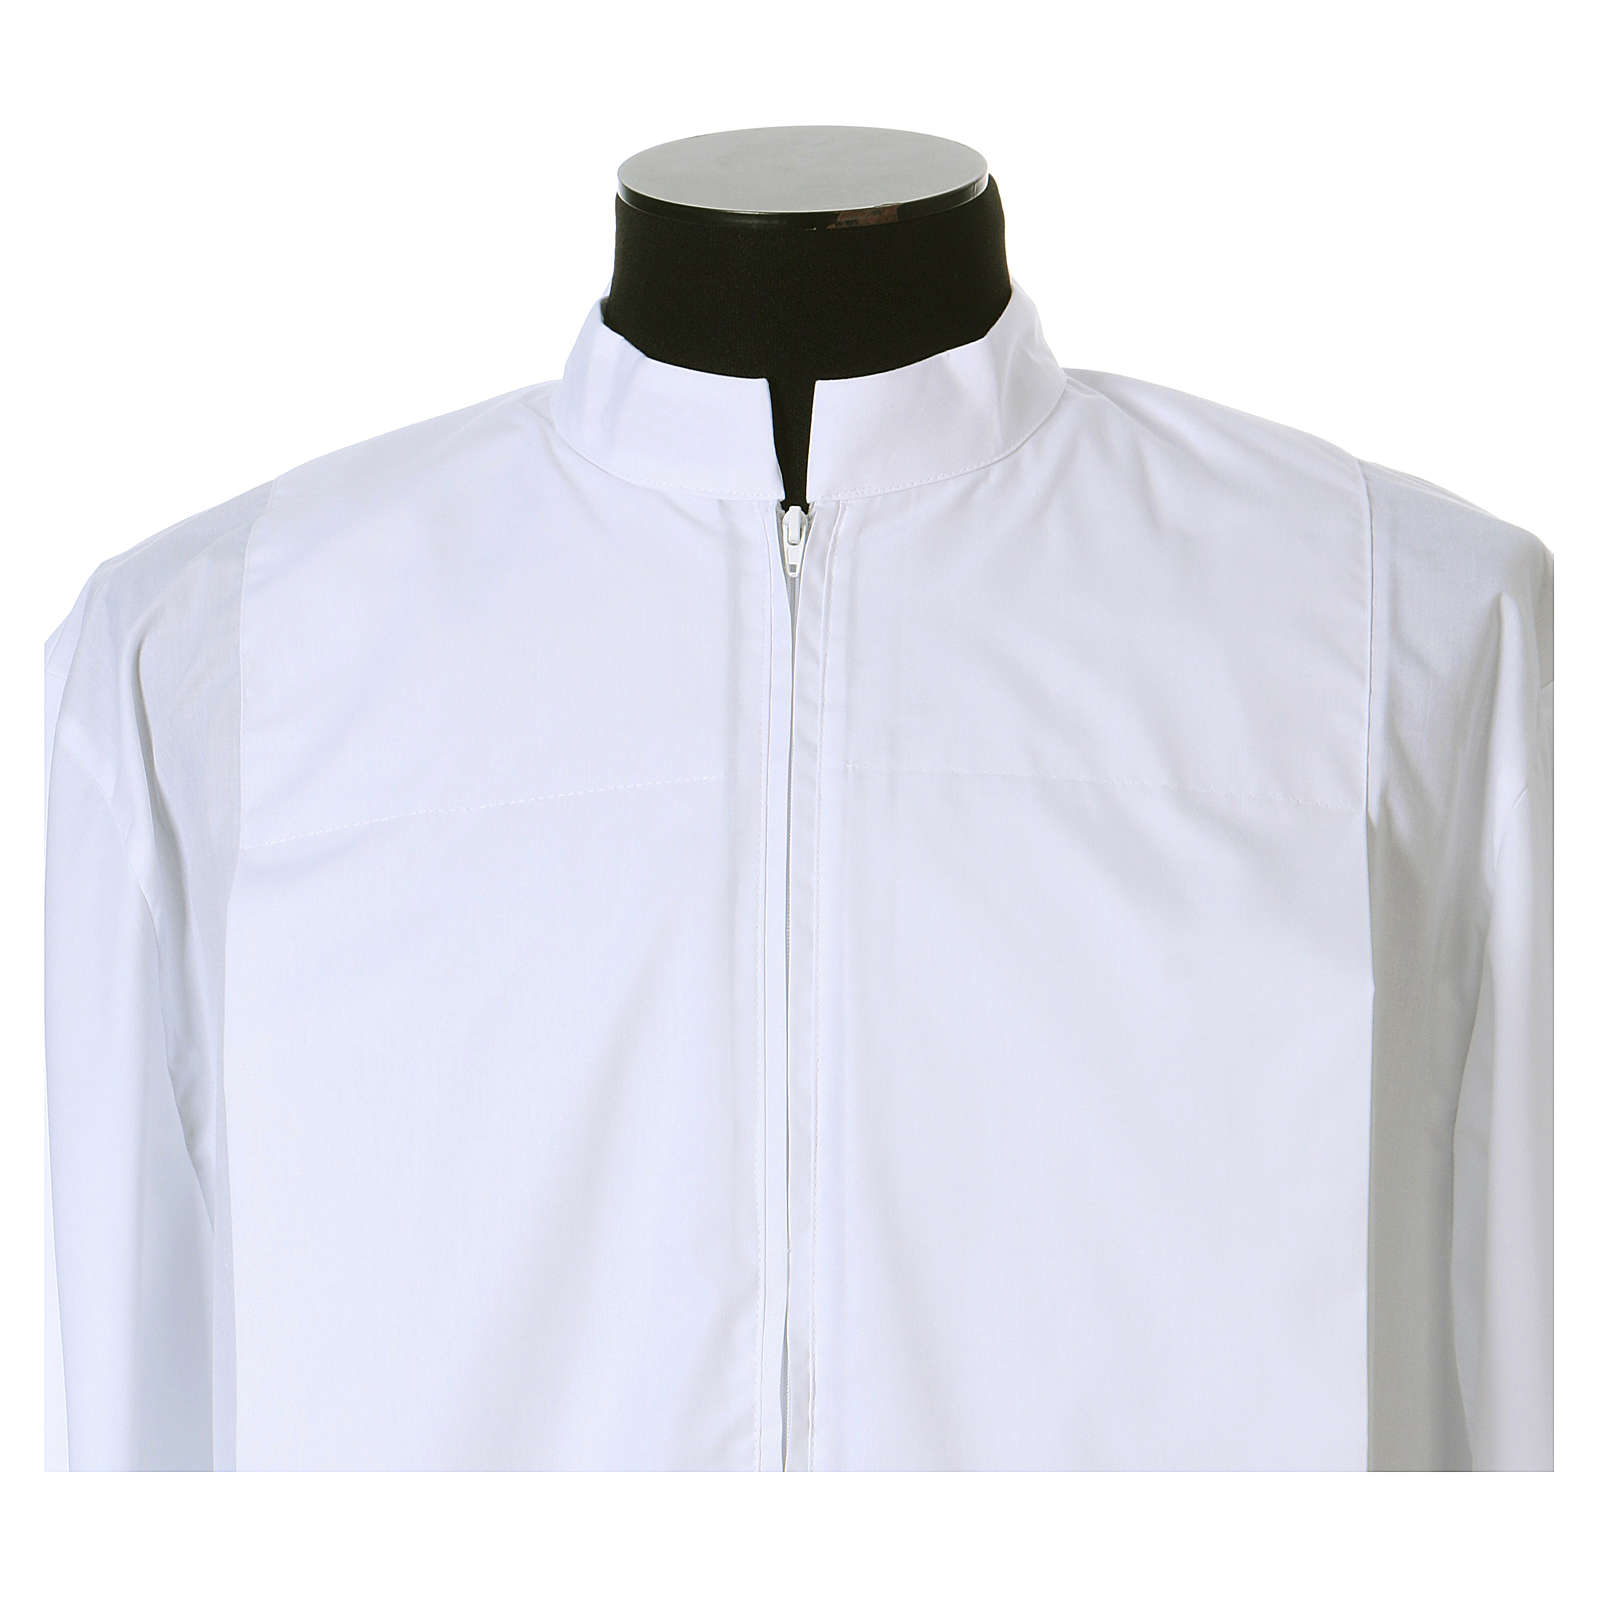 Alb 65% polyester 35% cotton with 2 pleats and zipper on the front, white 4